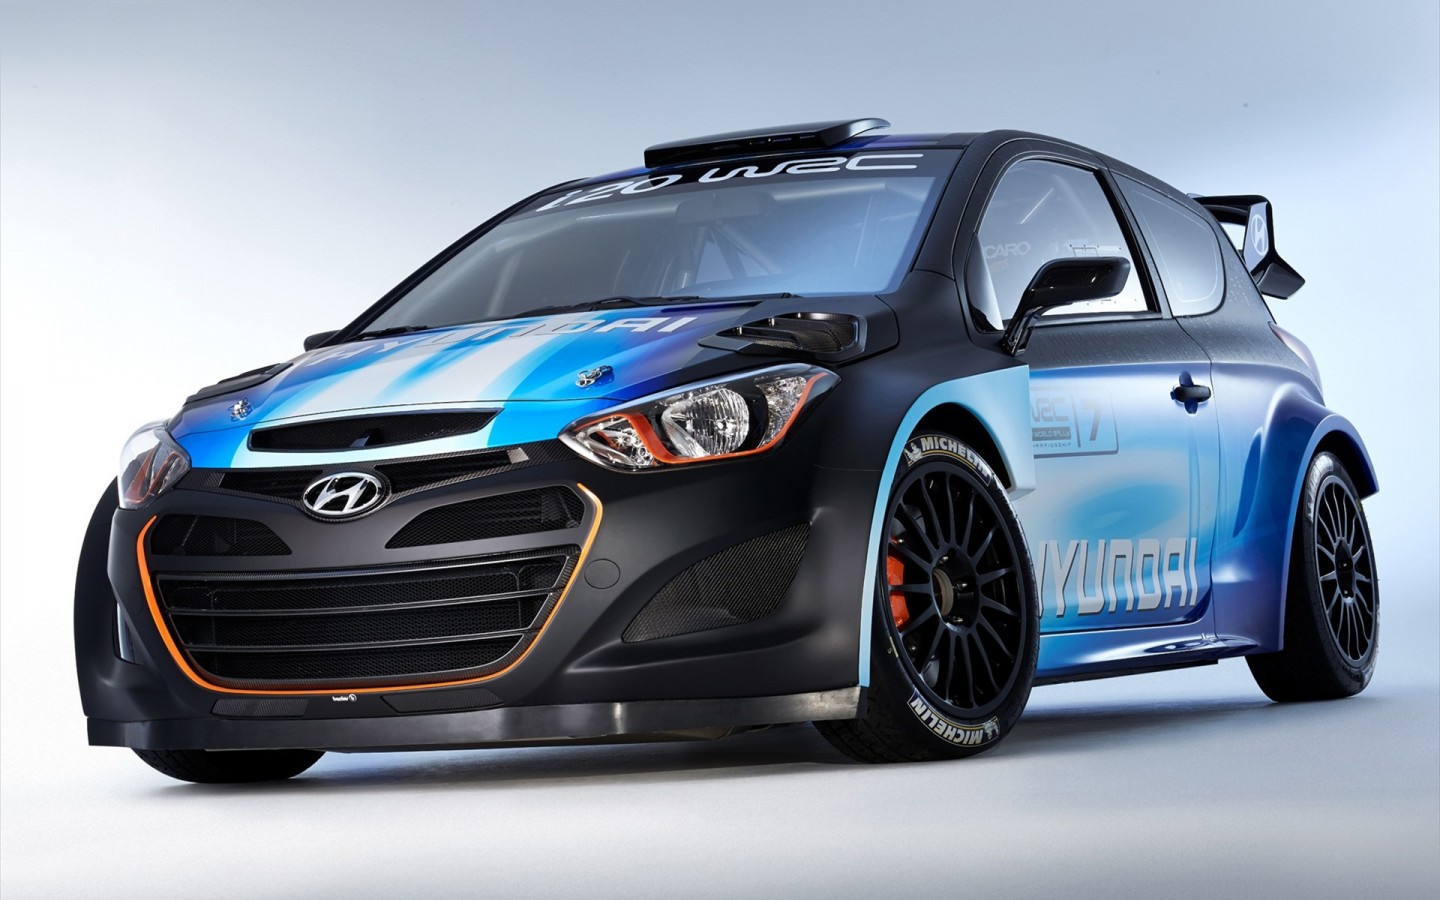 2014 hyundai i20 wrc wallpaper hd car wallpapers id 3309. Black Bedroom Furniture Sets. Home Design Ideas